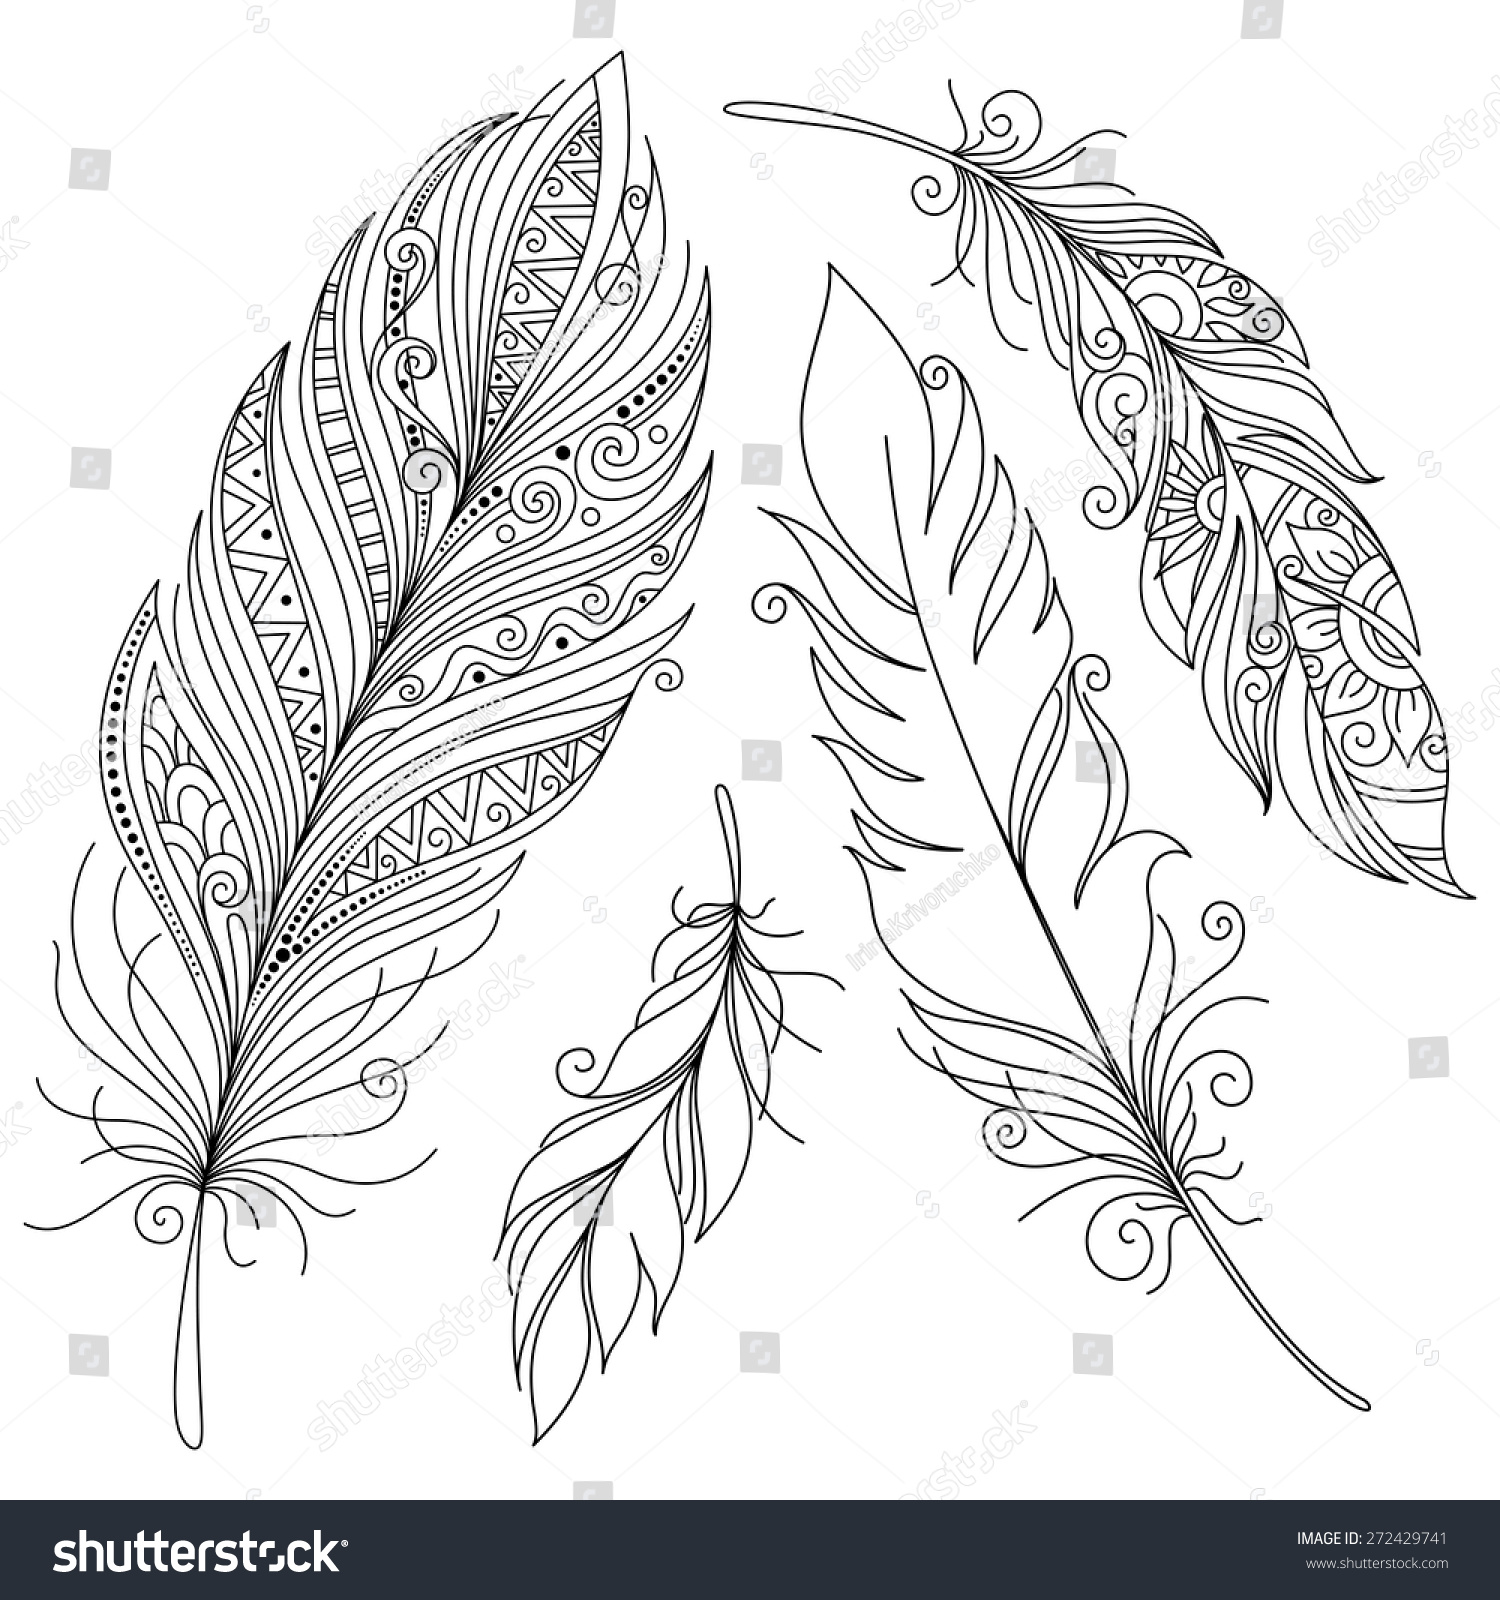 Vector peerless decorative feather tribal design stock for Coloring pages of feathers